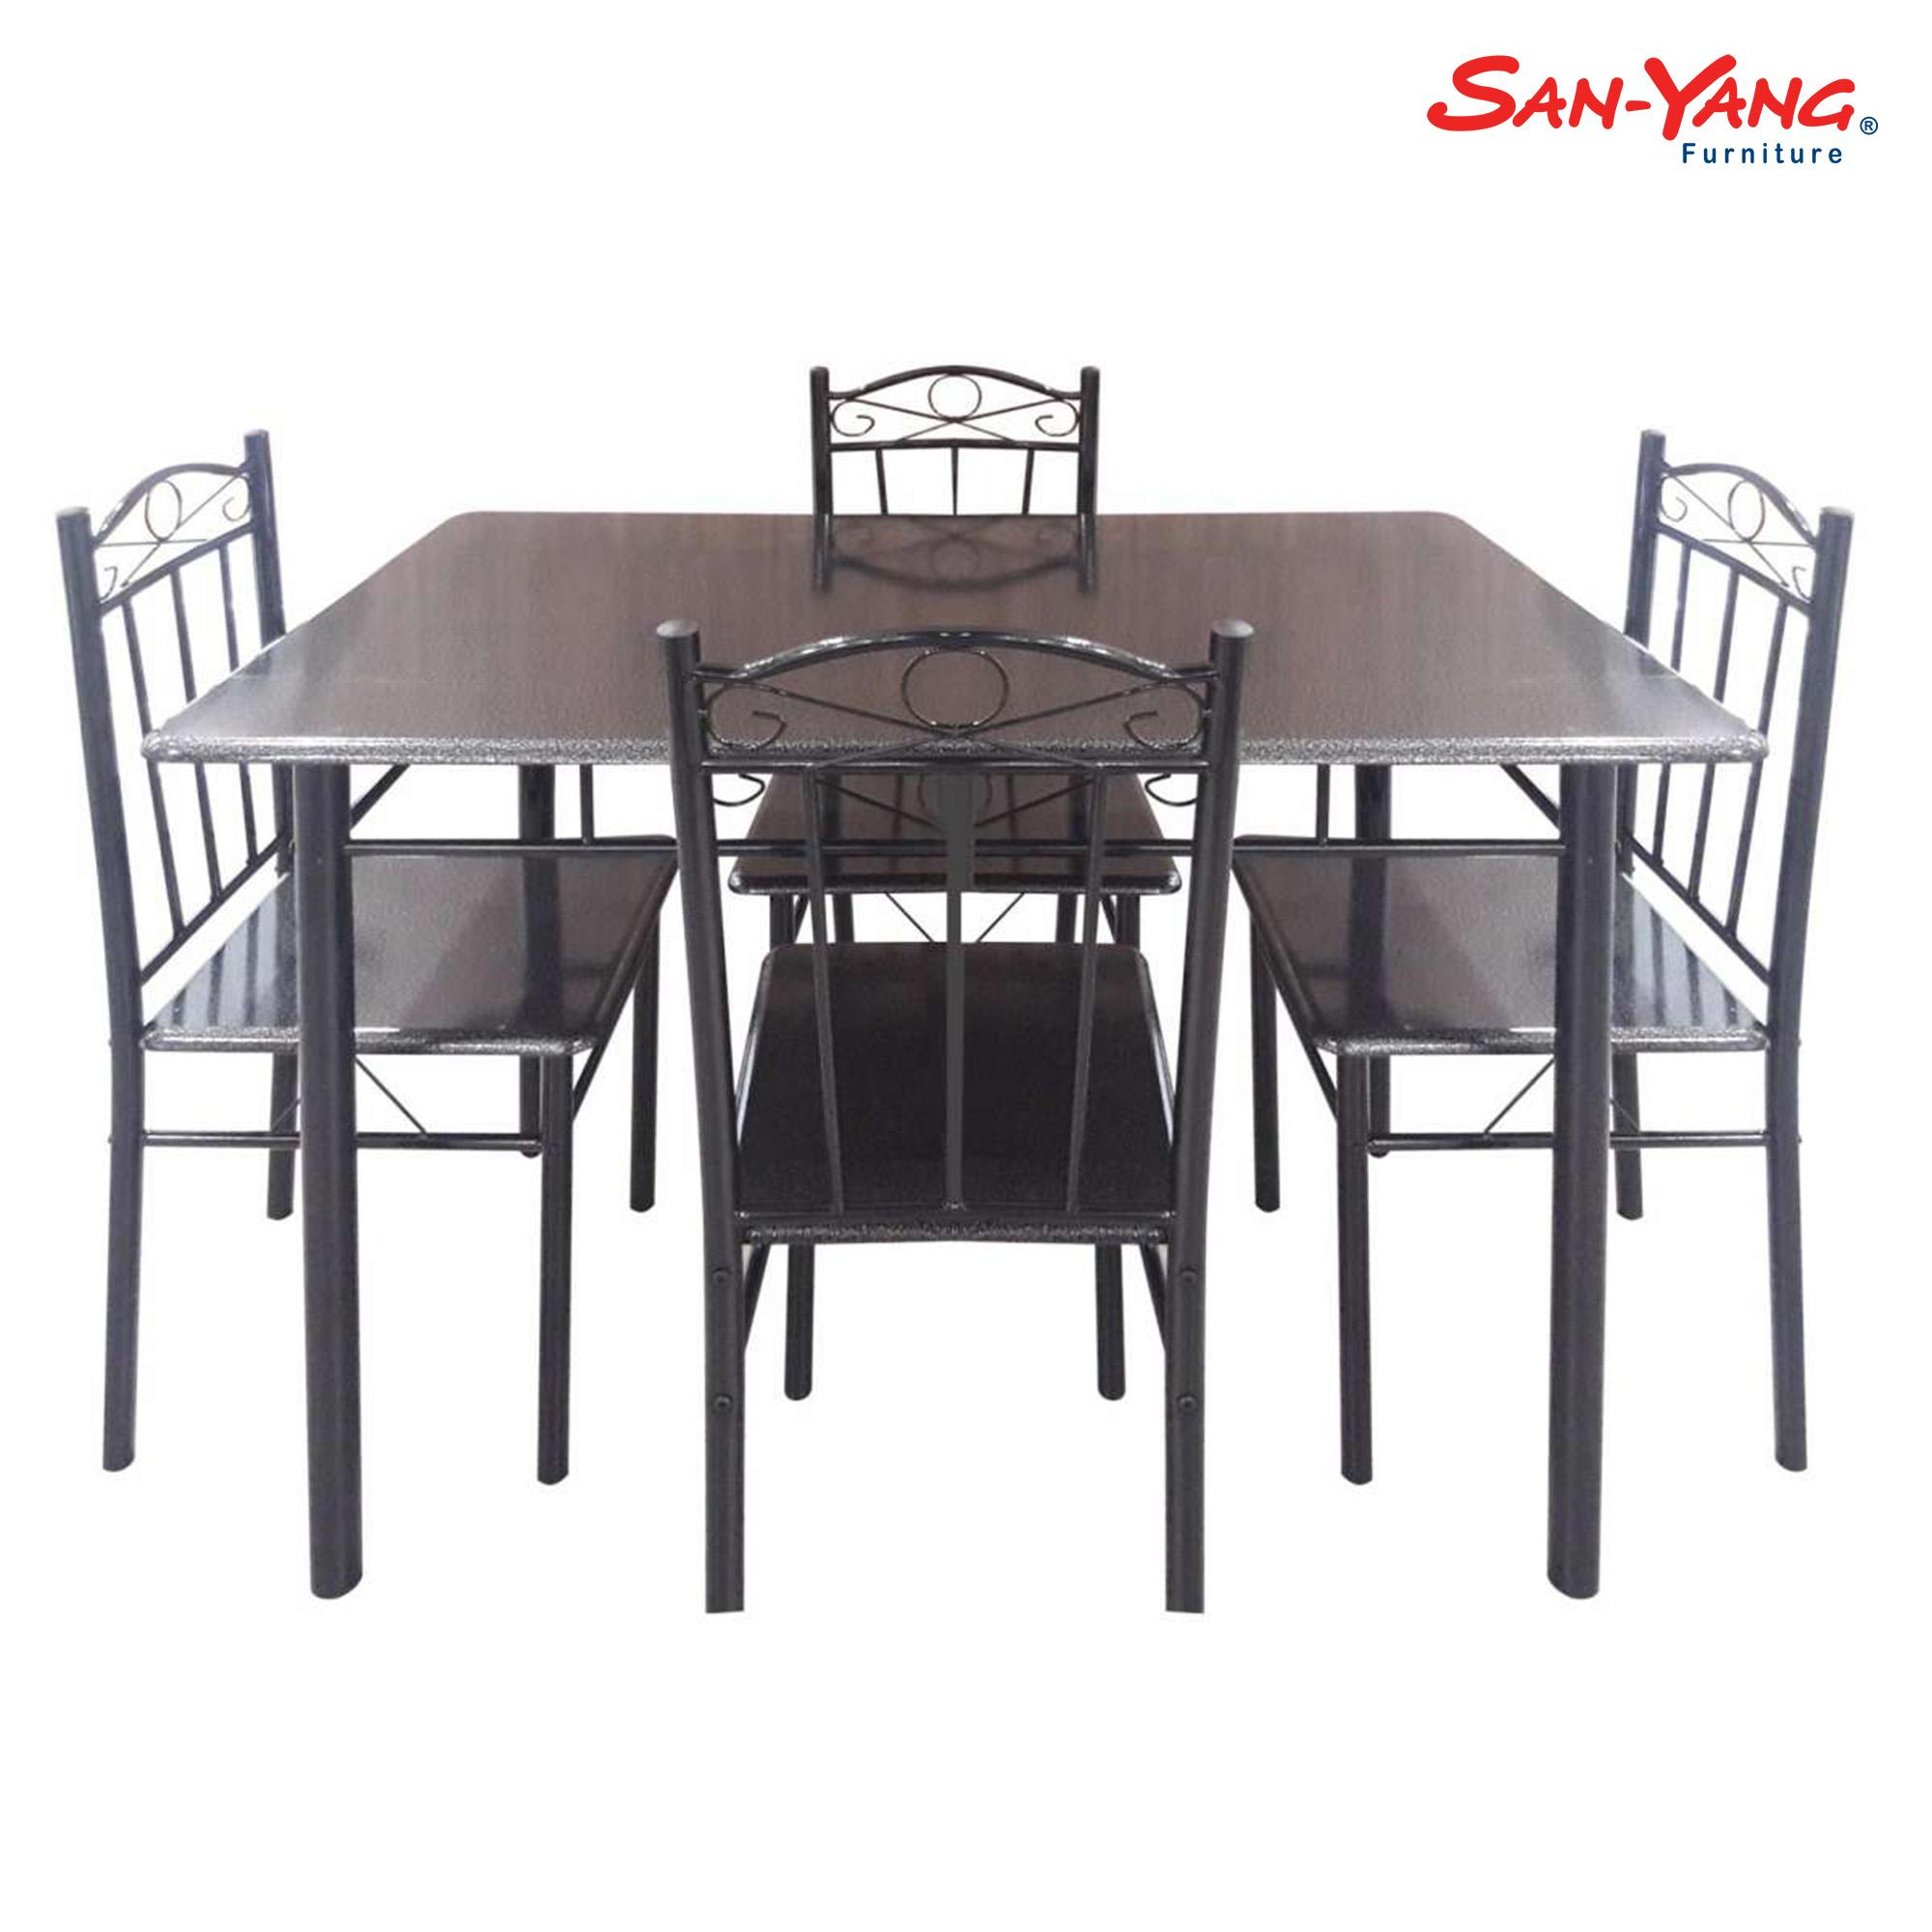 Remarkable San Yang Dining Set Fds12024S Download Free Architecture Designs Intelgarnamadebymaigaardcom